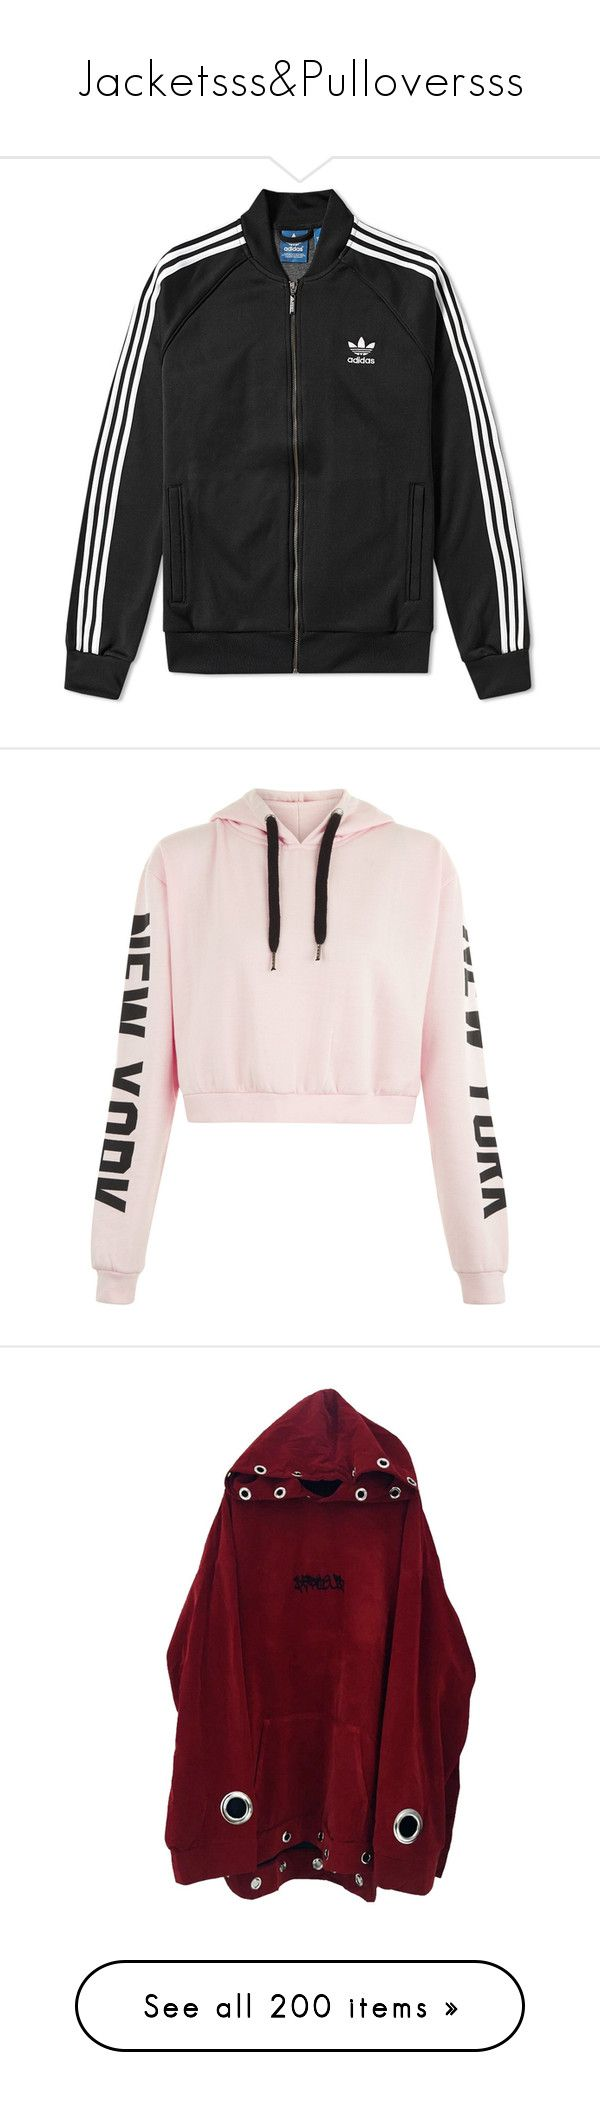 """""""Jacketsss&Pulloversss"""" by jadahnicole ❤ liked on Polyvore featuring hoodies, grey marl, men's fashion, men's clothing, men's activewear, men's activewear jackets, outerwear, jackets, men and mens track jacket"""